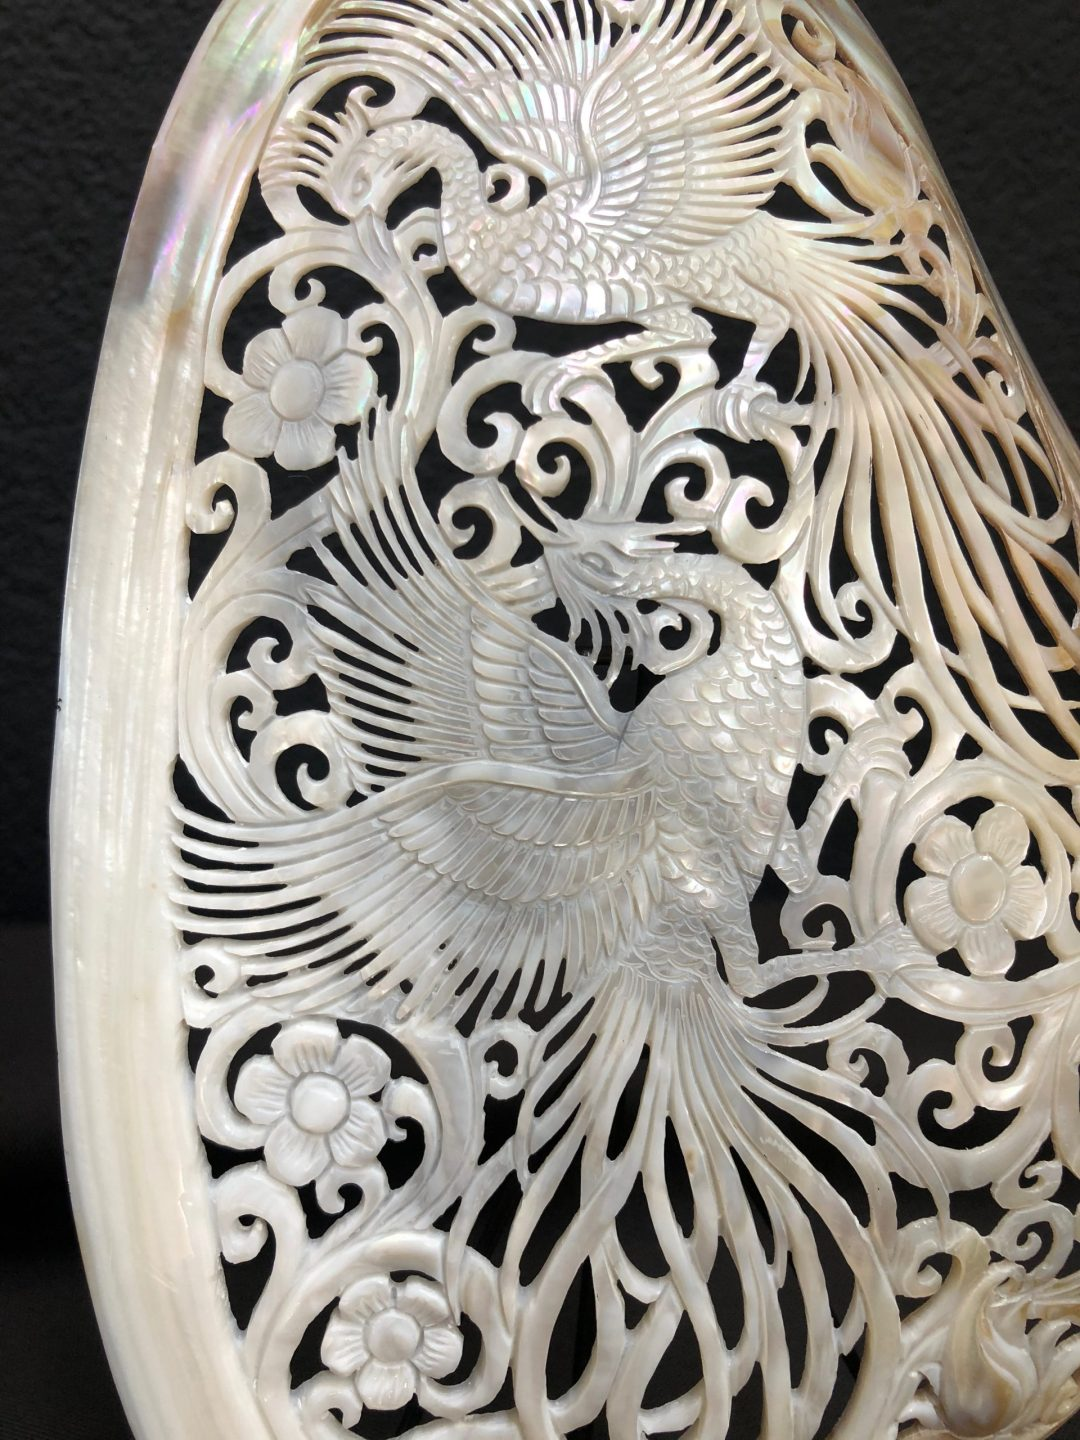 Carved Mother of Pearl Shell Birds of Paradise 2